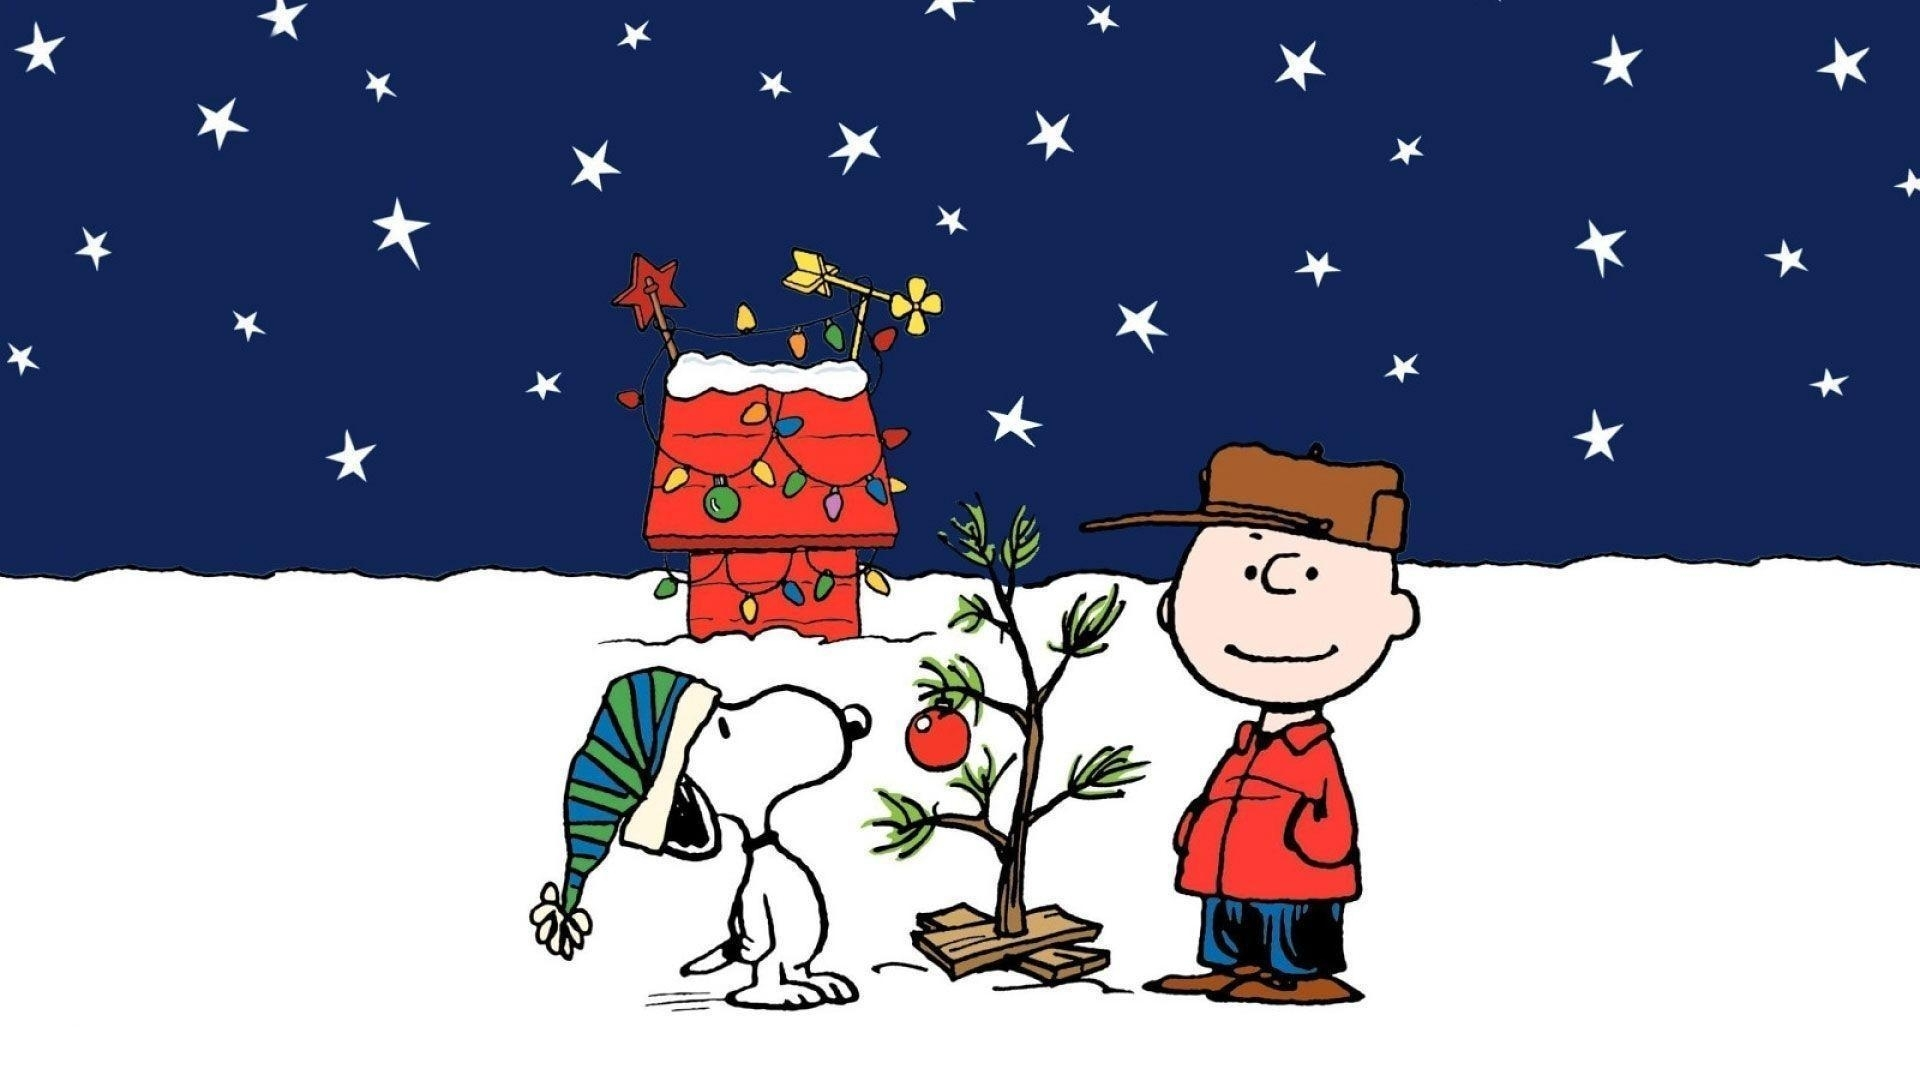 peanuts christmas wallpapers - wallpaper cave